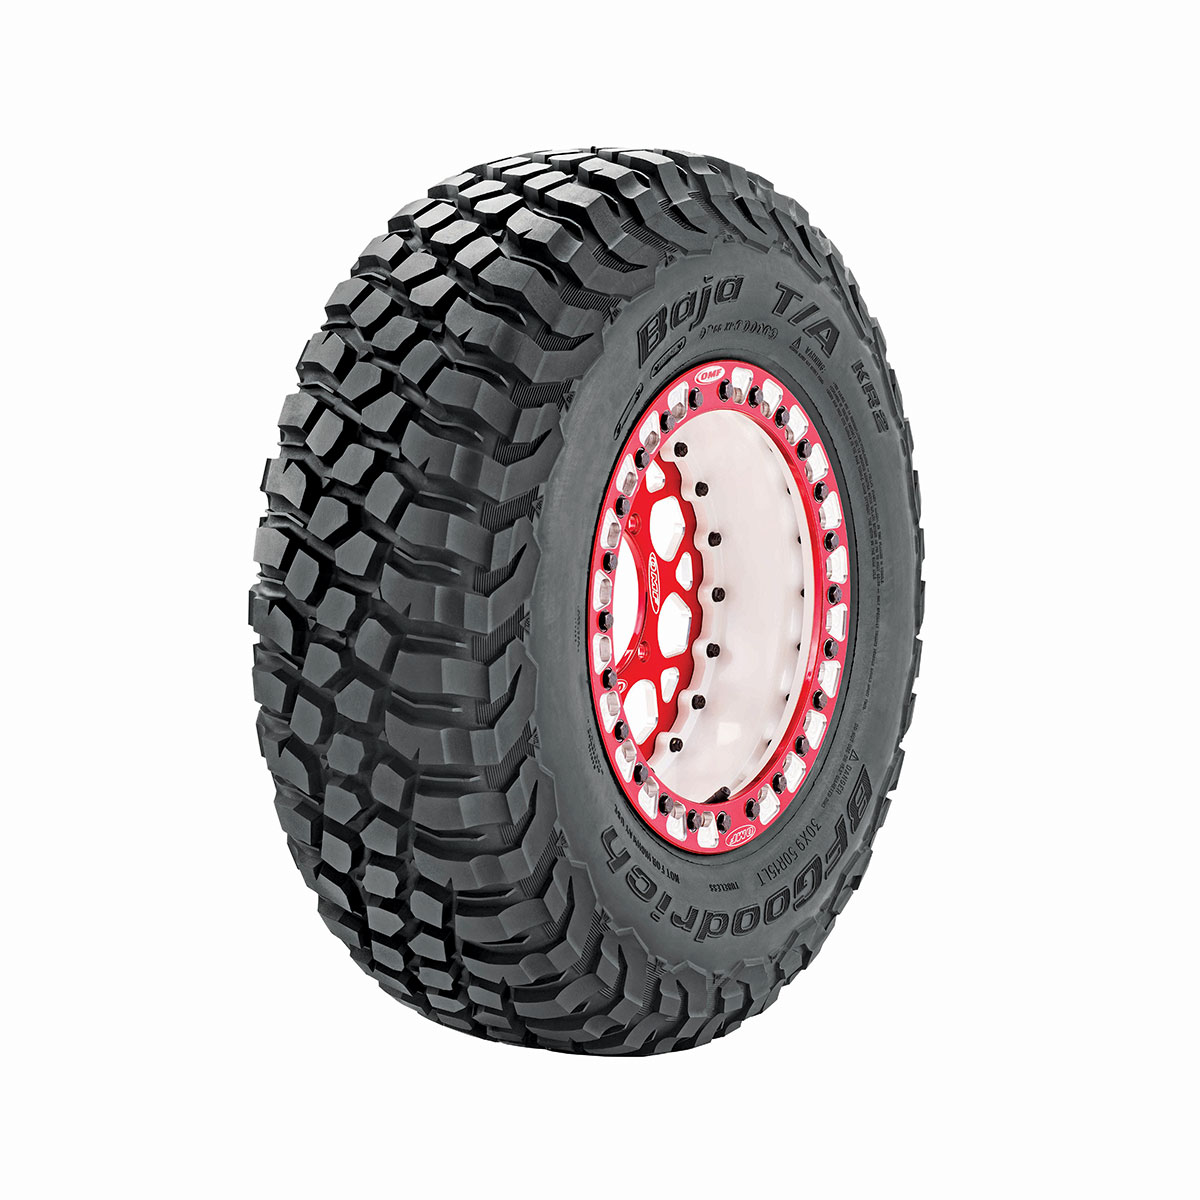 BFG's new KR2 UTV tire is only available in one size—30/9.9-15—but expect a 32-inch option to be available soon. The 30s sell for $258 each, unless you get the racer discount.